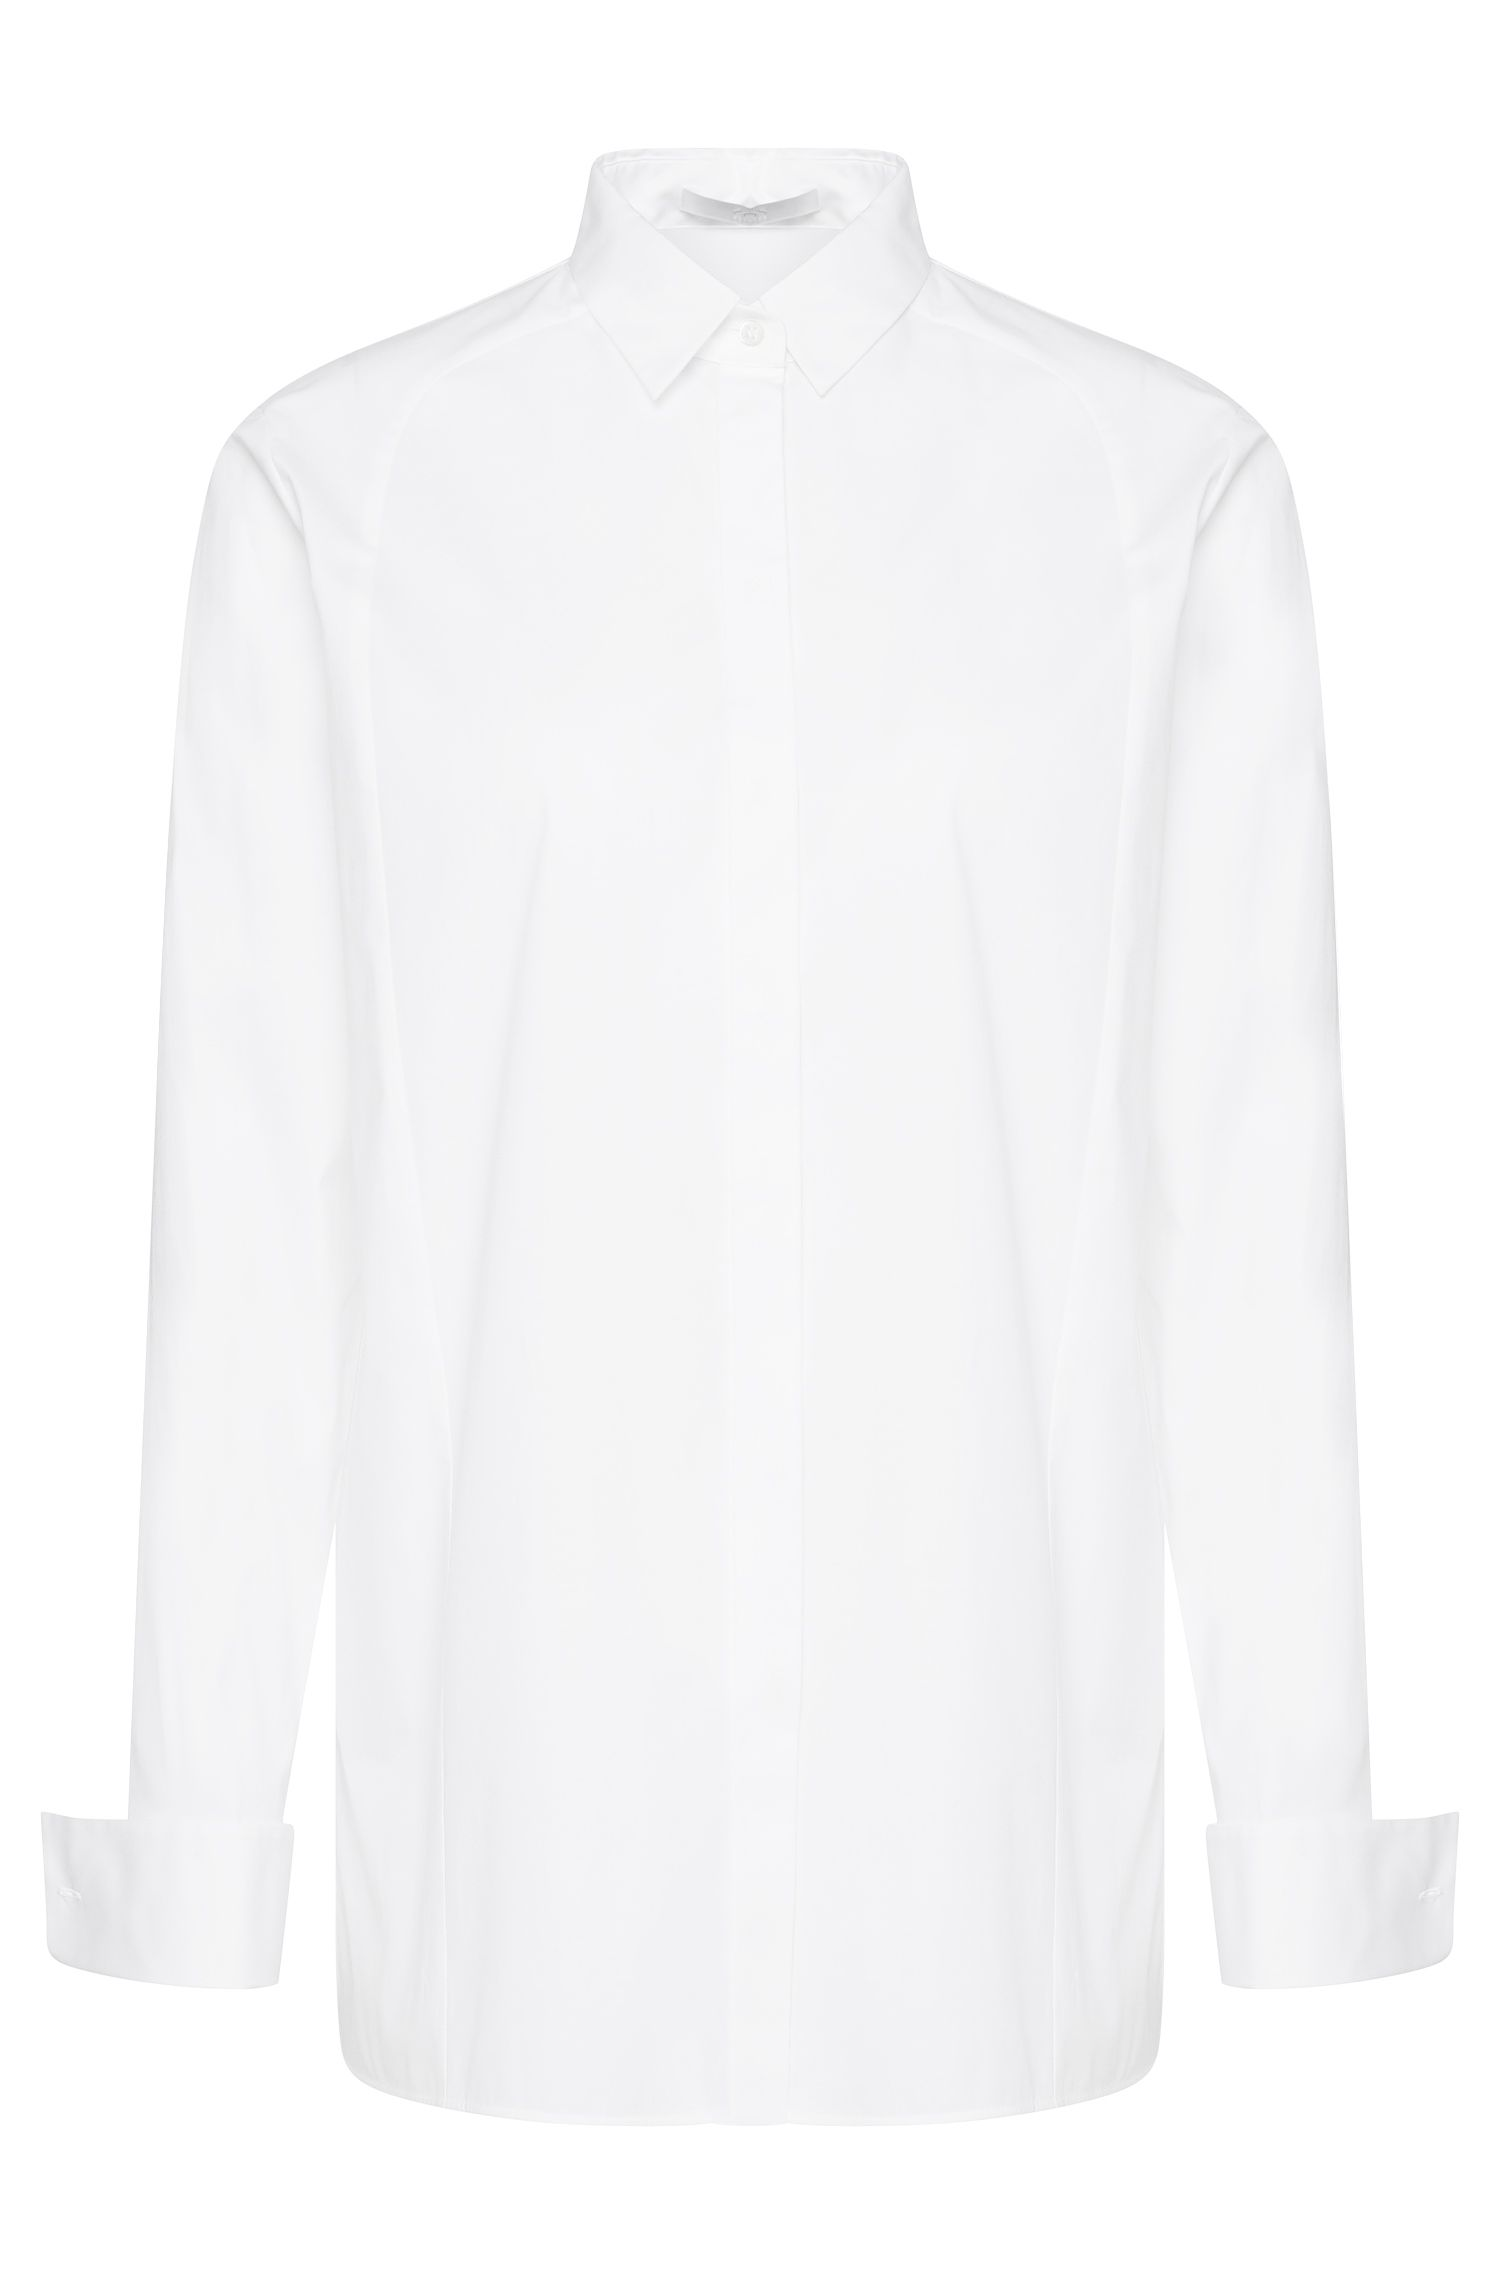 'Betena' | Stretch Cotton French Cuff Button Down Shirt